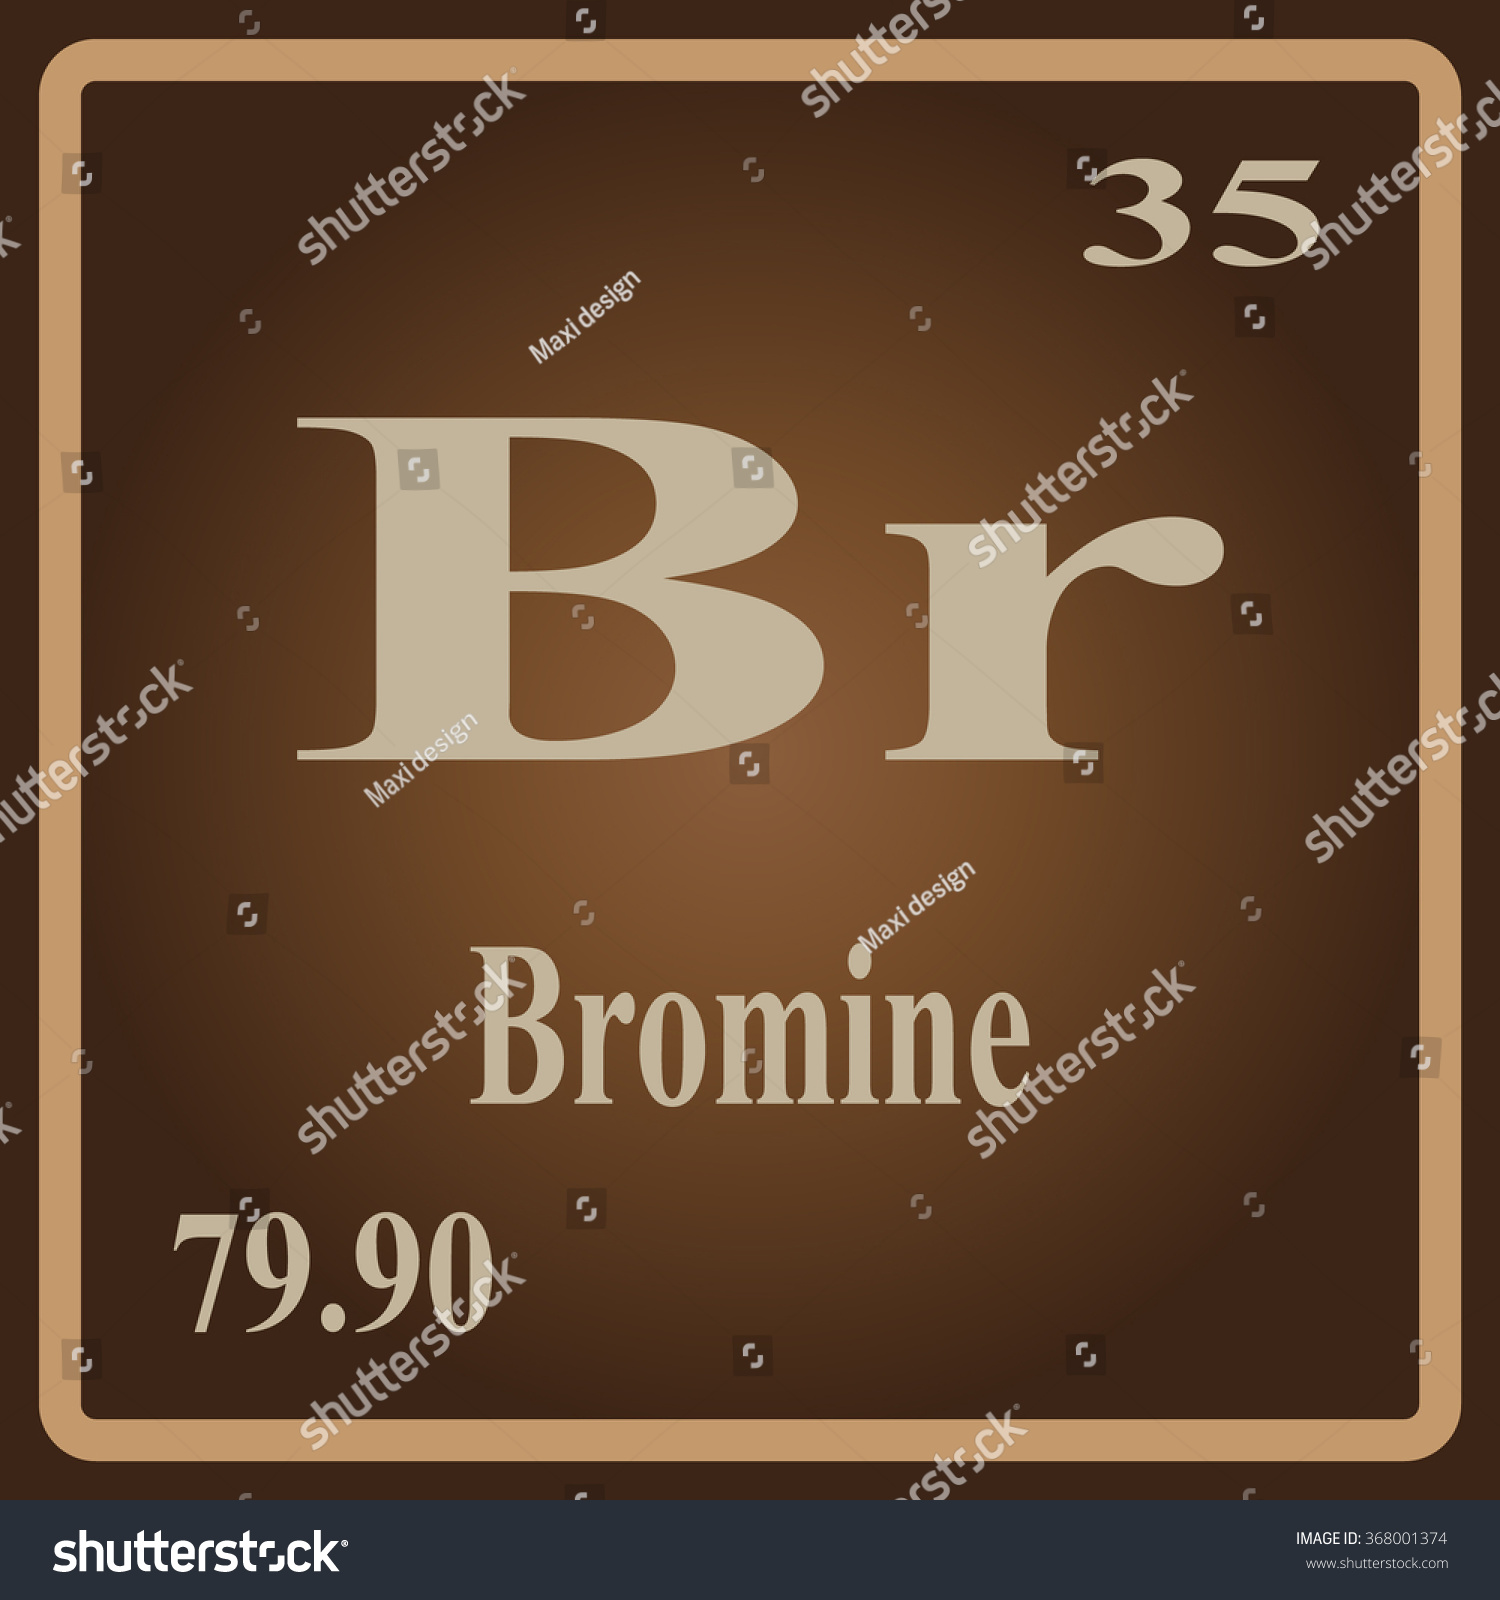 Periodic table elements bromine stock vector 368001374 shutterstock the periodic table of the elements bromine biocorpaavc